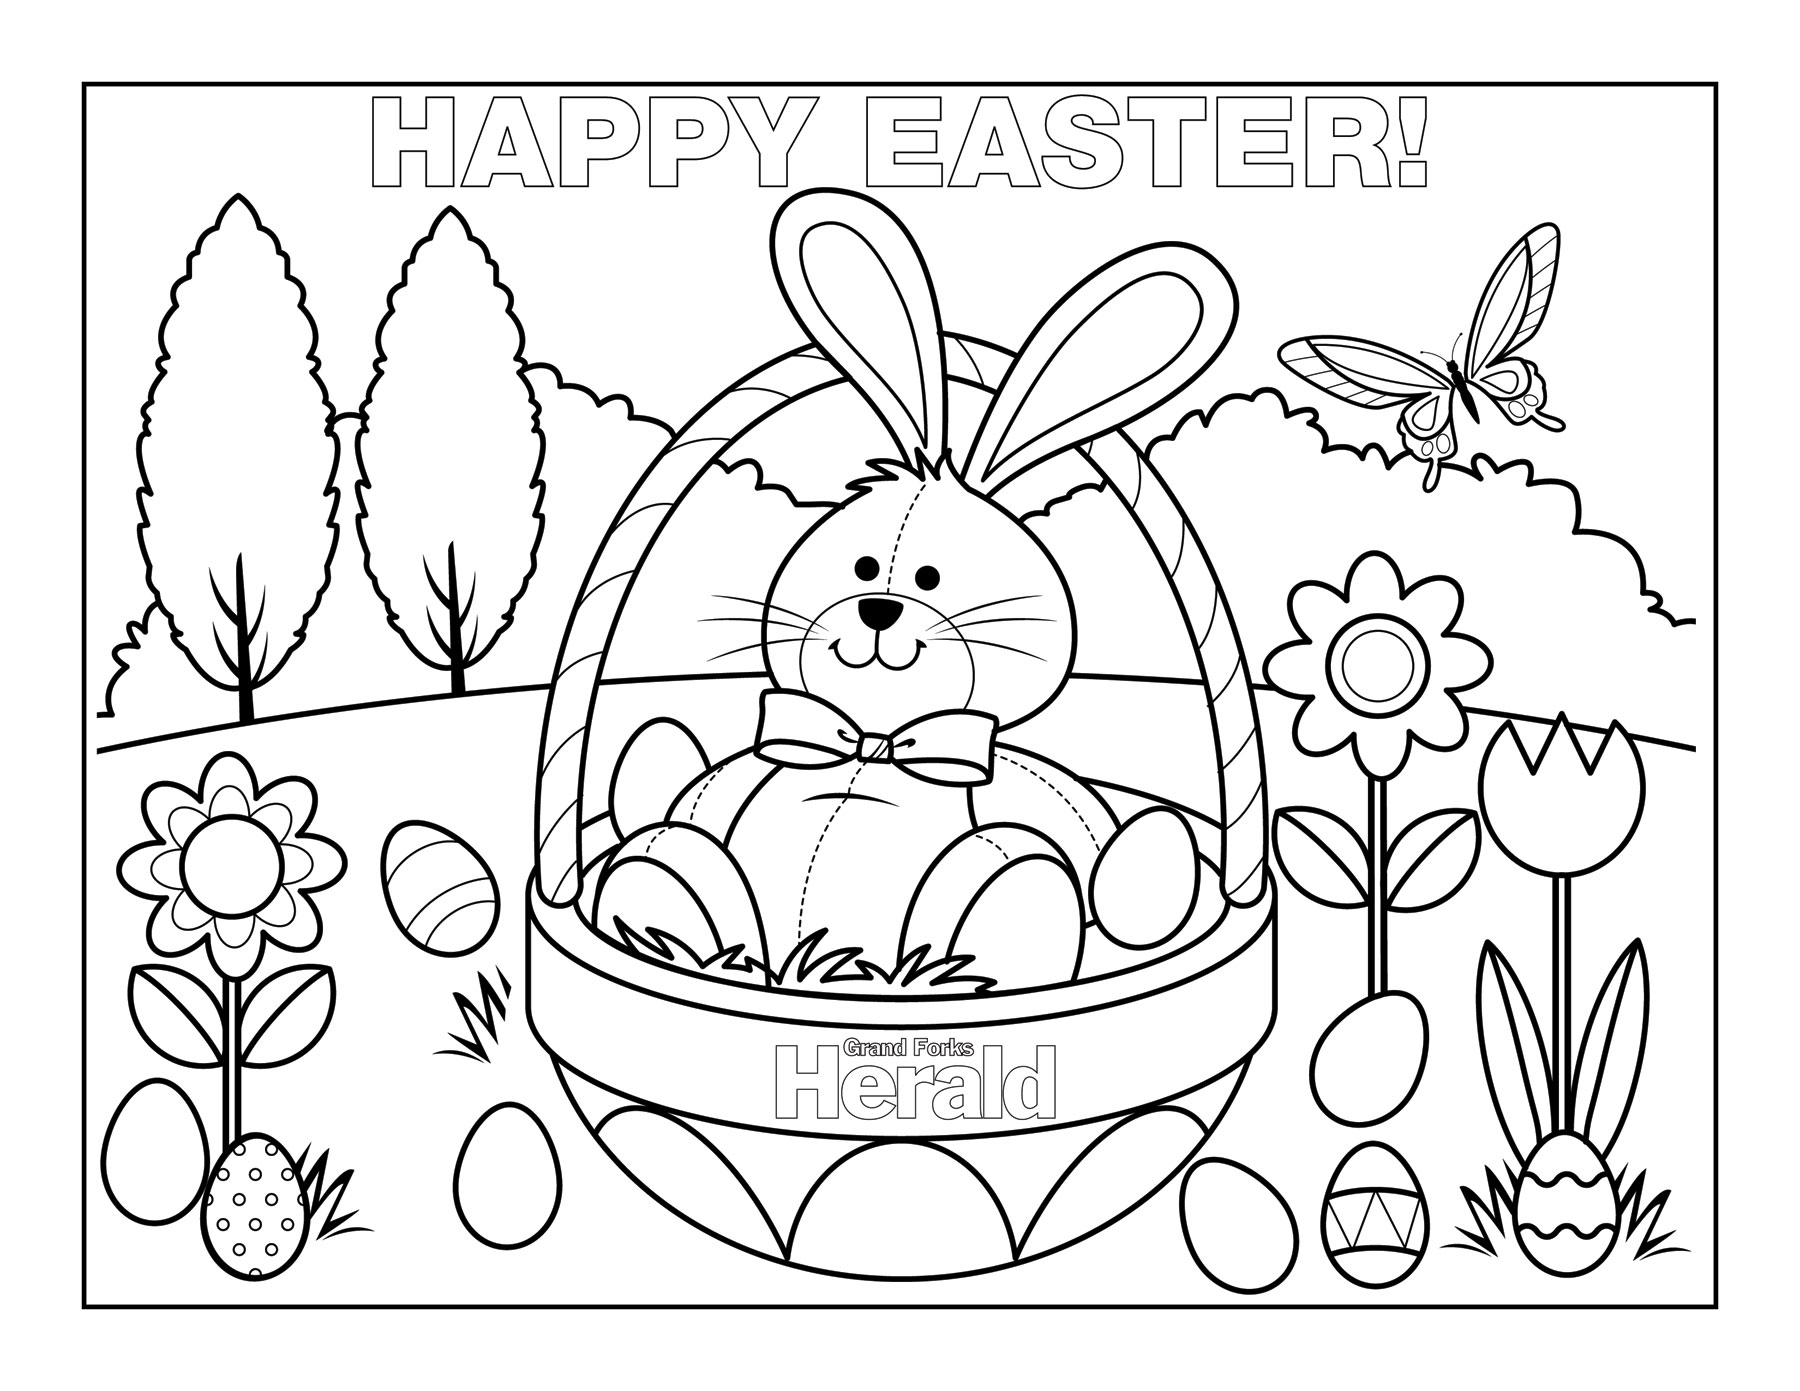 free printable easter coloring pages free printable easter coloring pages easter freebies between the kids coloring free printable easter pages